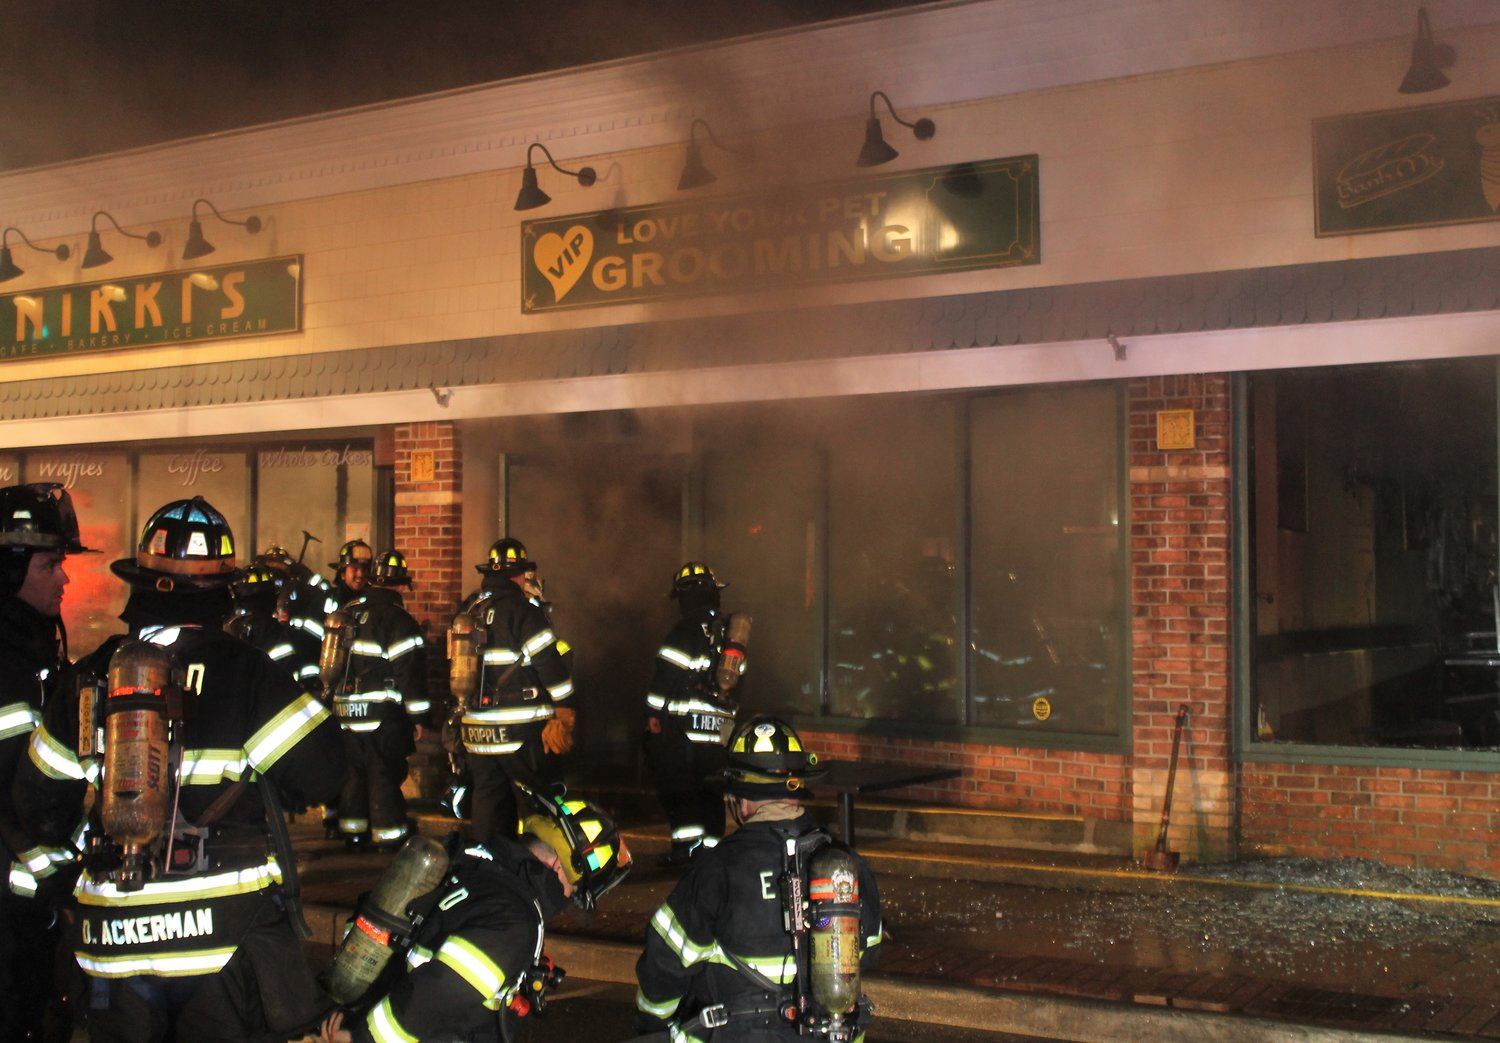 Initially sparked by a lightning bolt that struck the restaurant, the fire filled the pet-grooming store next door with smoke.